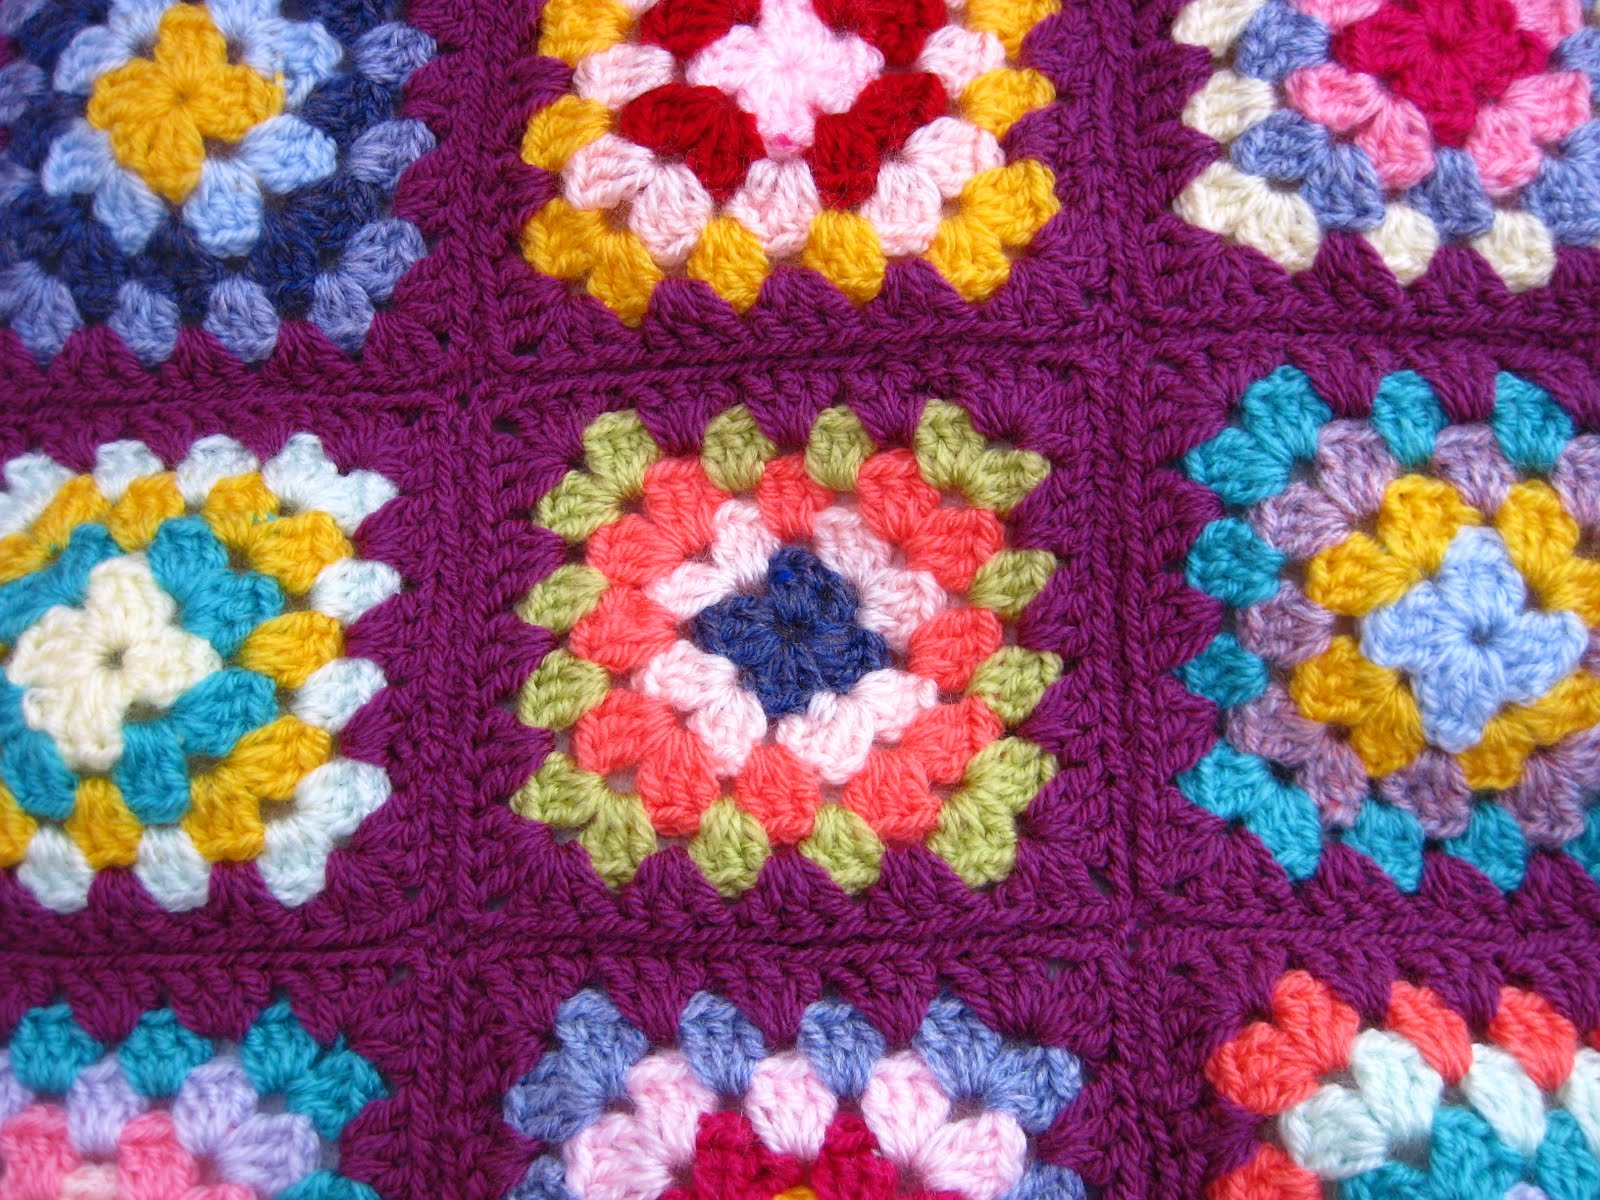 Crocheting Granny Squares Together Video : Bunny Mummy: Sewing Granny Squares Together